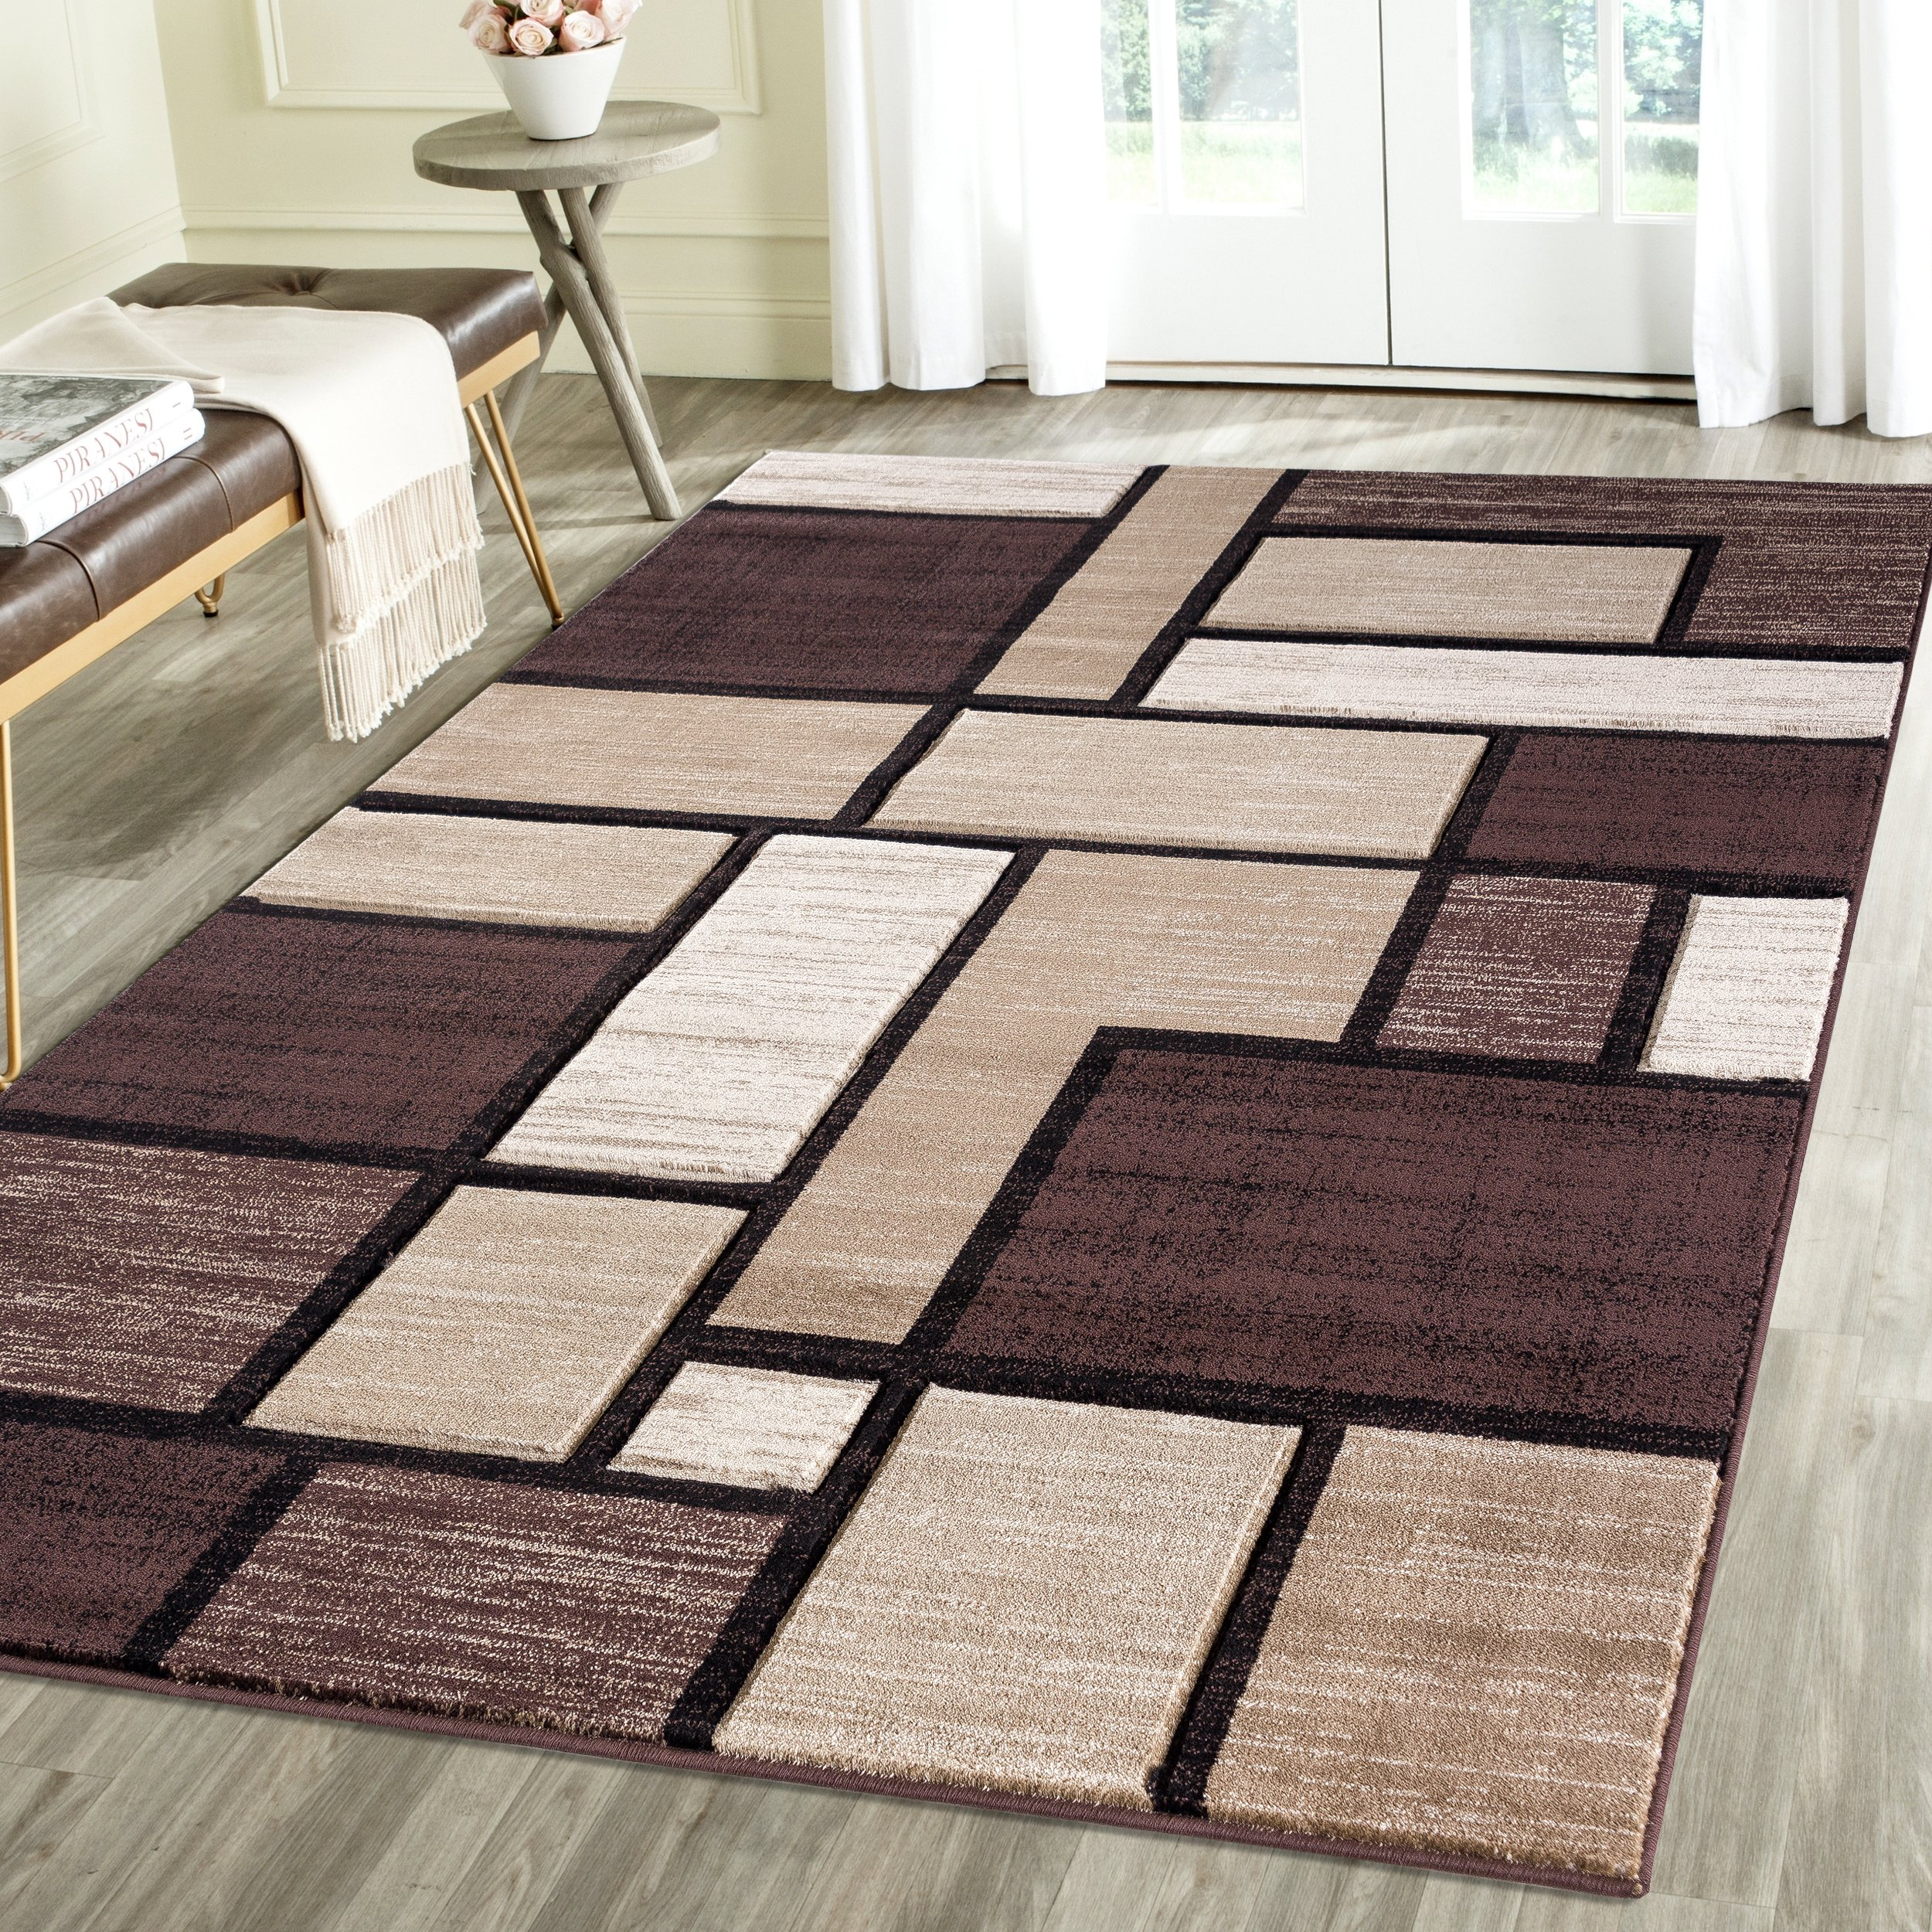 Contemporary Squared Geometric Emerald Collection Carved Area Rug by Rug Deal Plus (7'11'' x 10'4'', Brown/Beige)